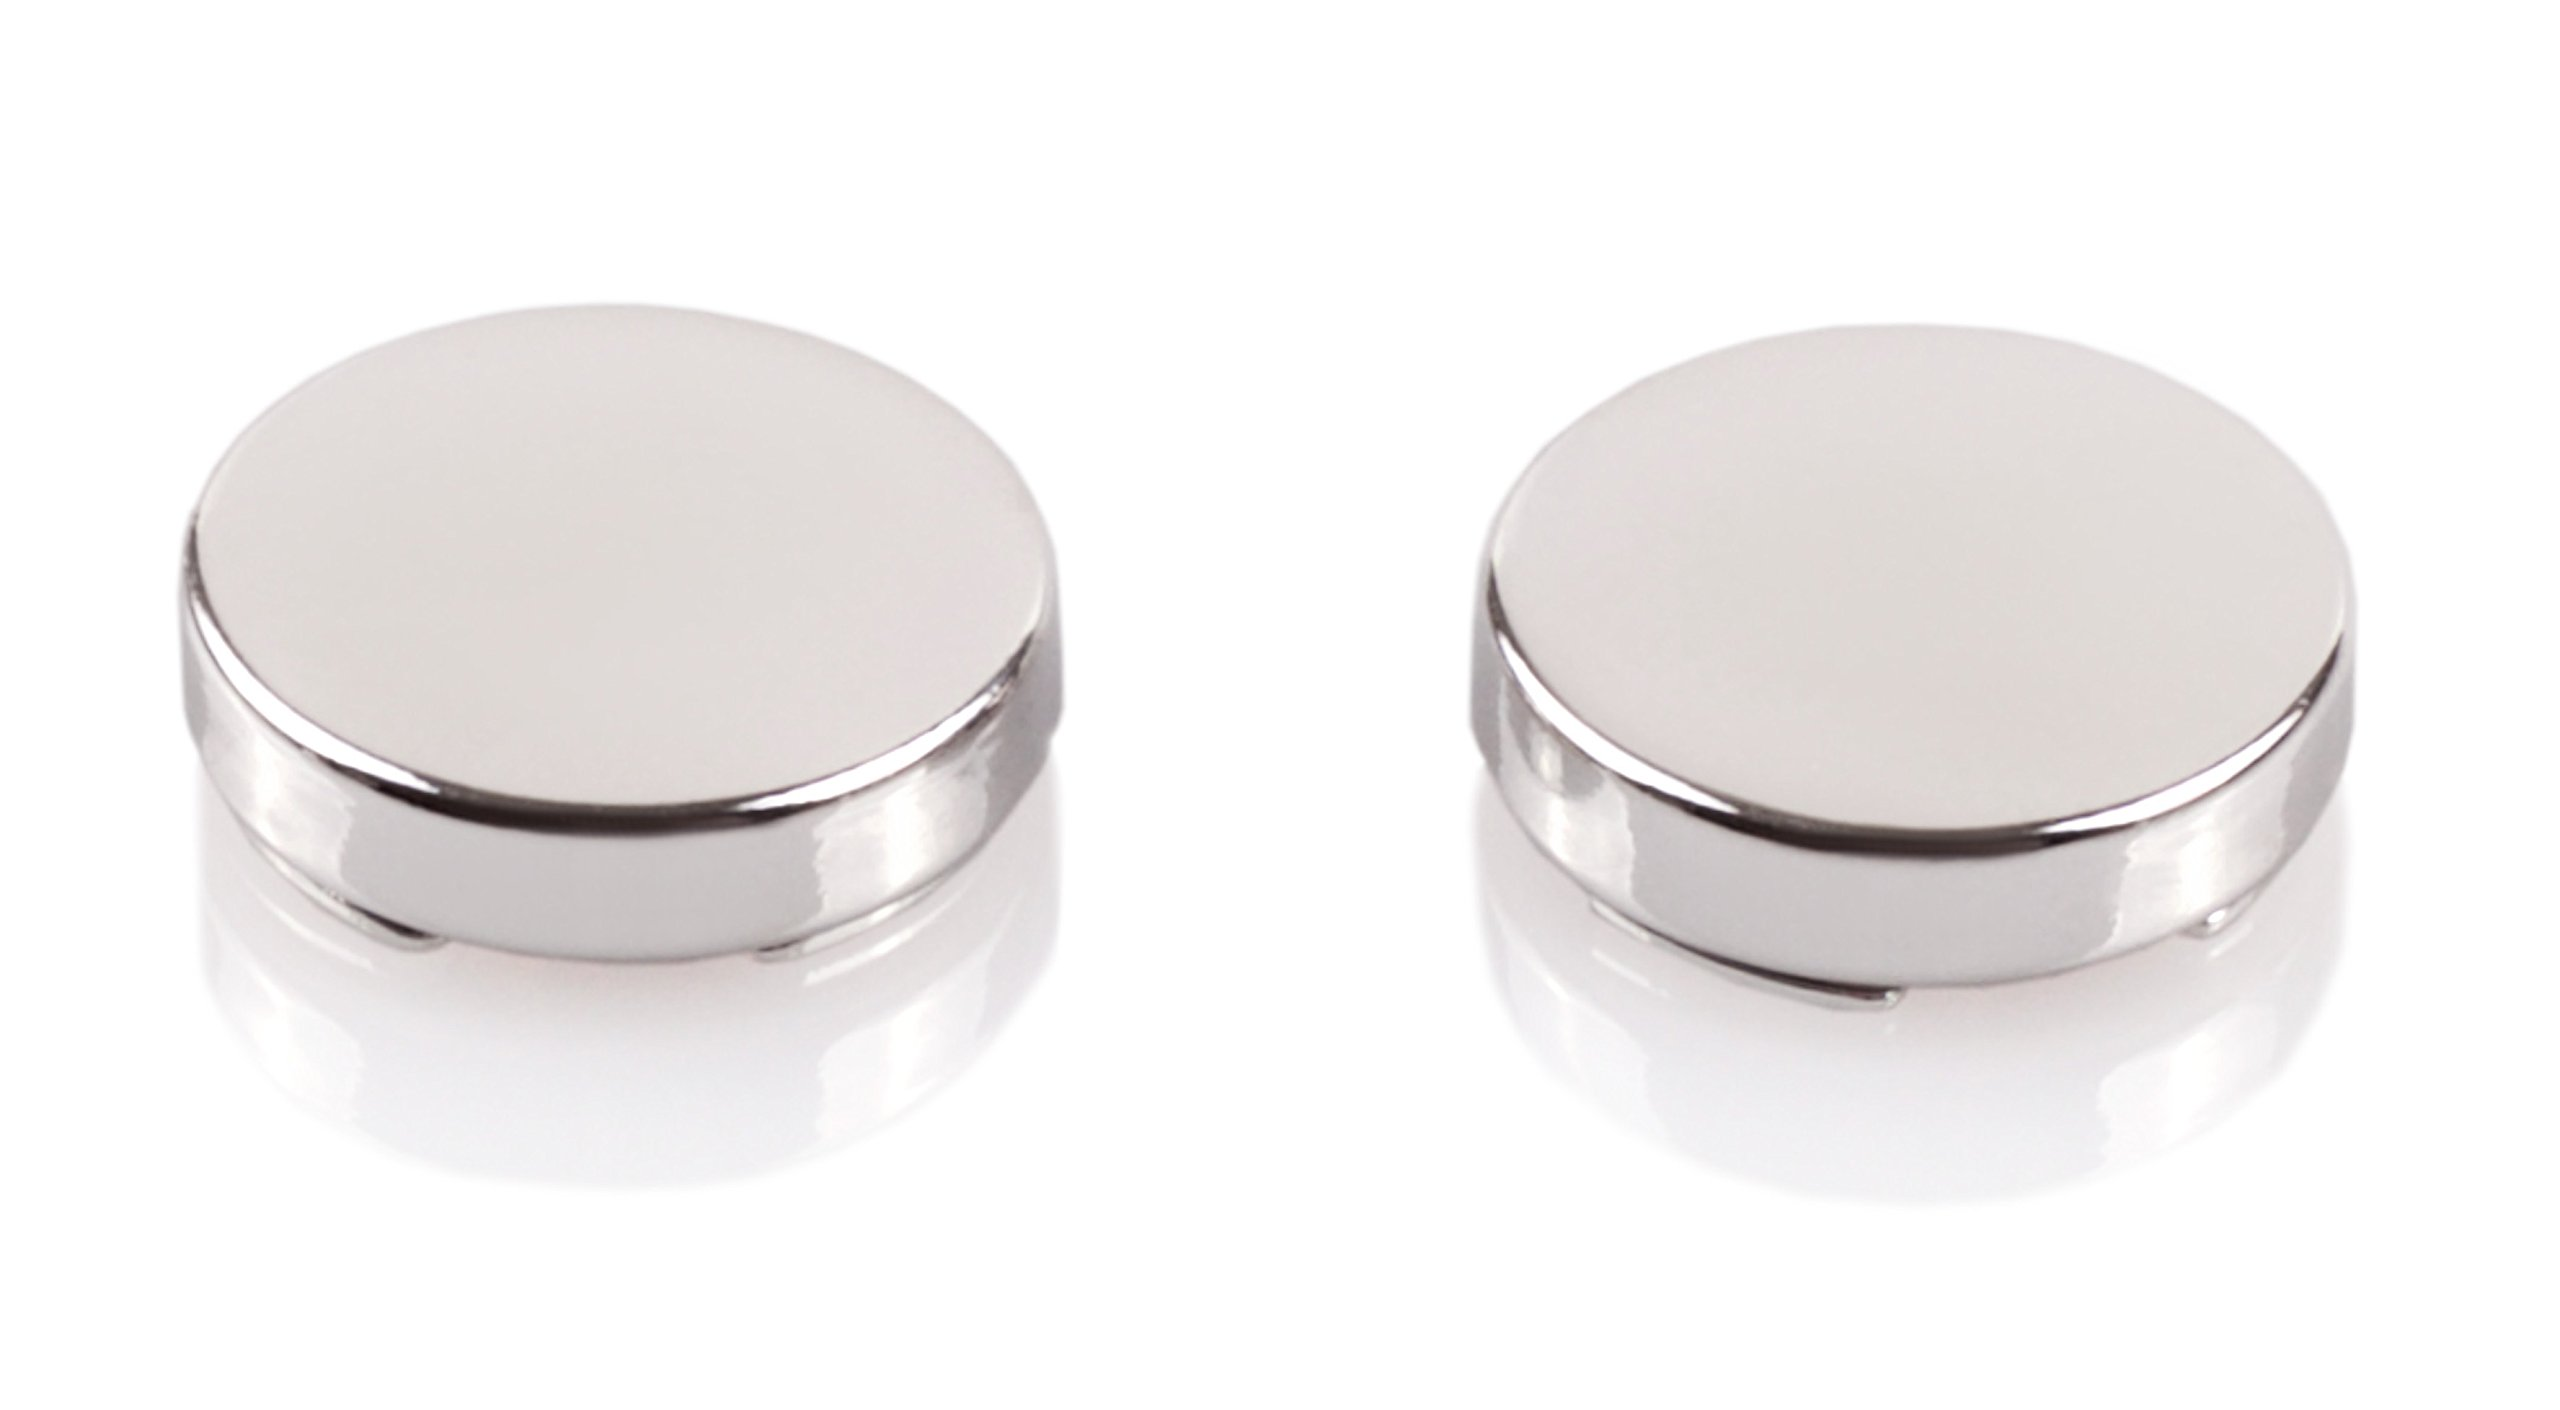 Silver Button Covers - Cuff Link Alternative for Shirts, Cuffs and Collars (CS-0- US)